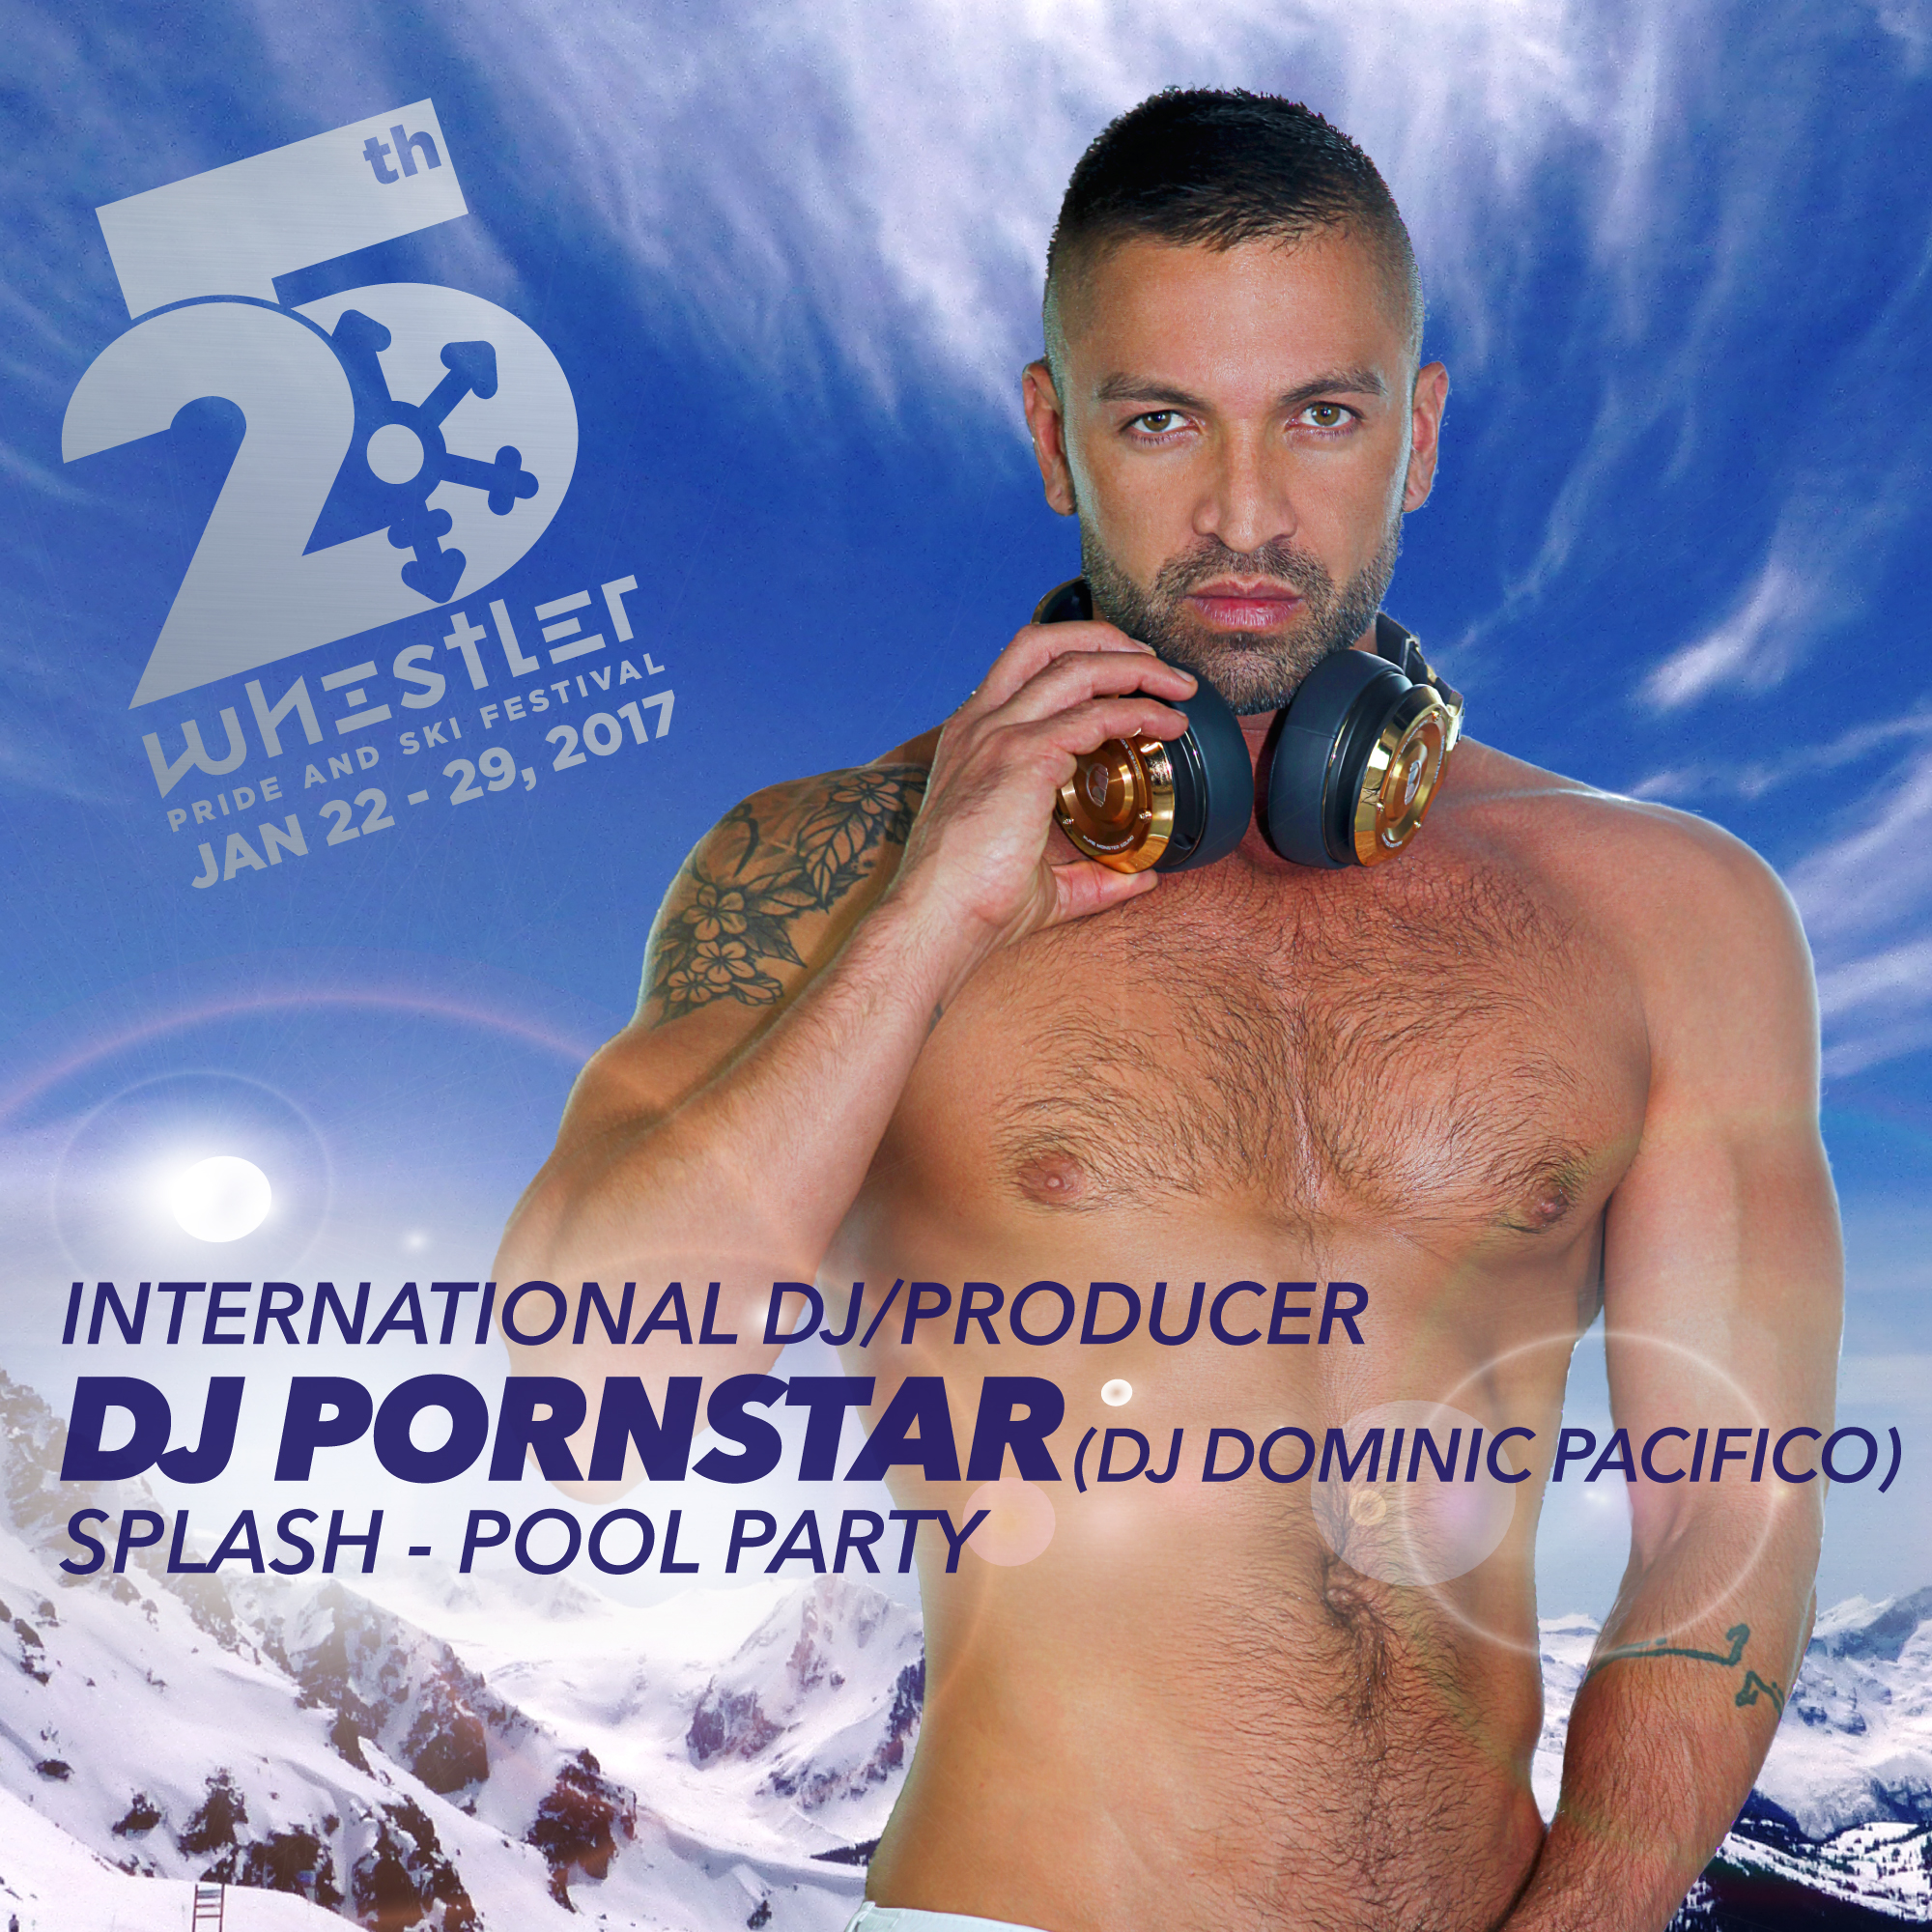 DJ Pacifico aka DJ Pornstar at Splash Pool Party Whistler Pride and ski festival